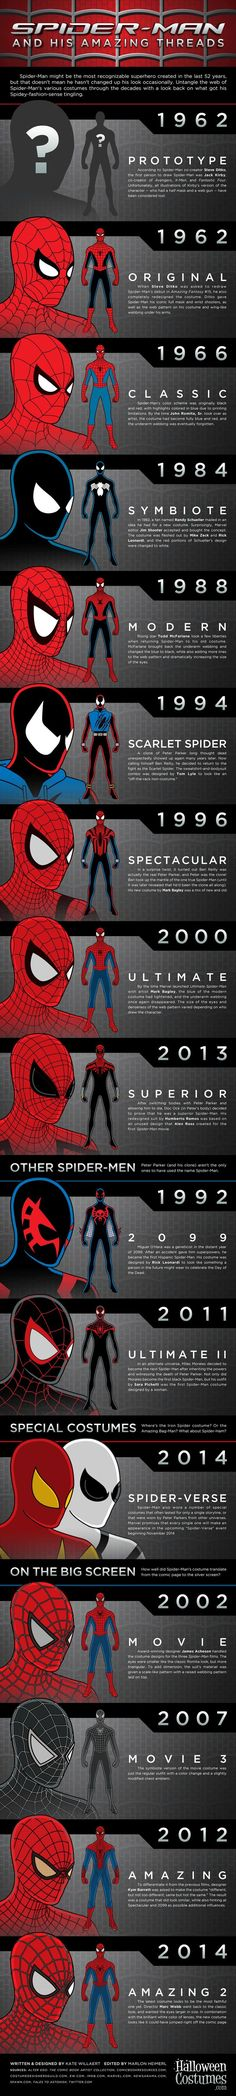 Spider-man Uniforms ---as far as im concerned, hi IS an avenger! viva spidey!! - visit to grab an unforgettable cool 3D Super Hero T-Shirt!